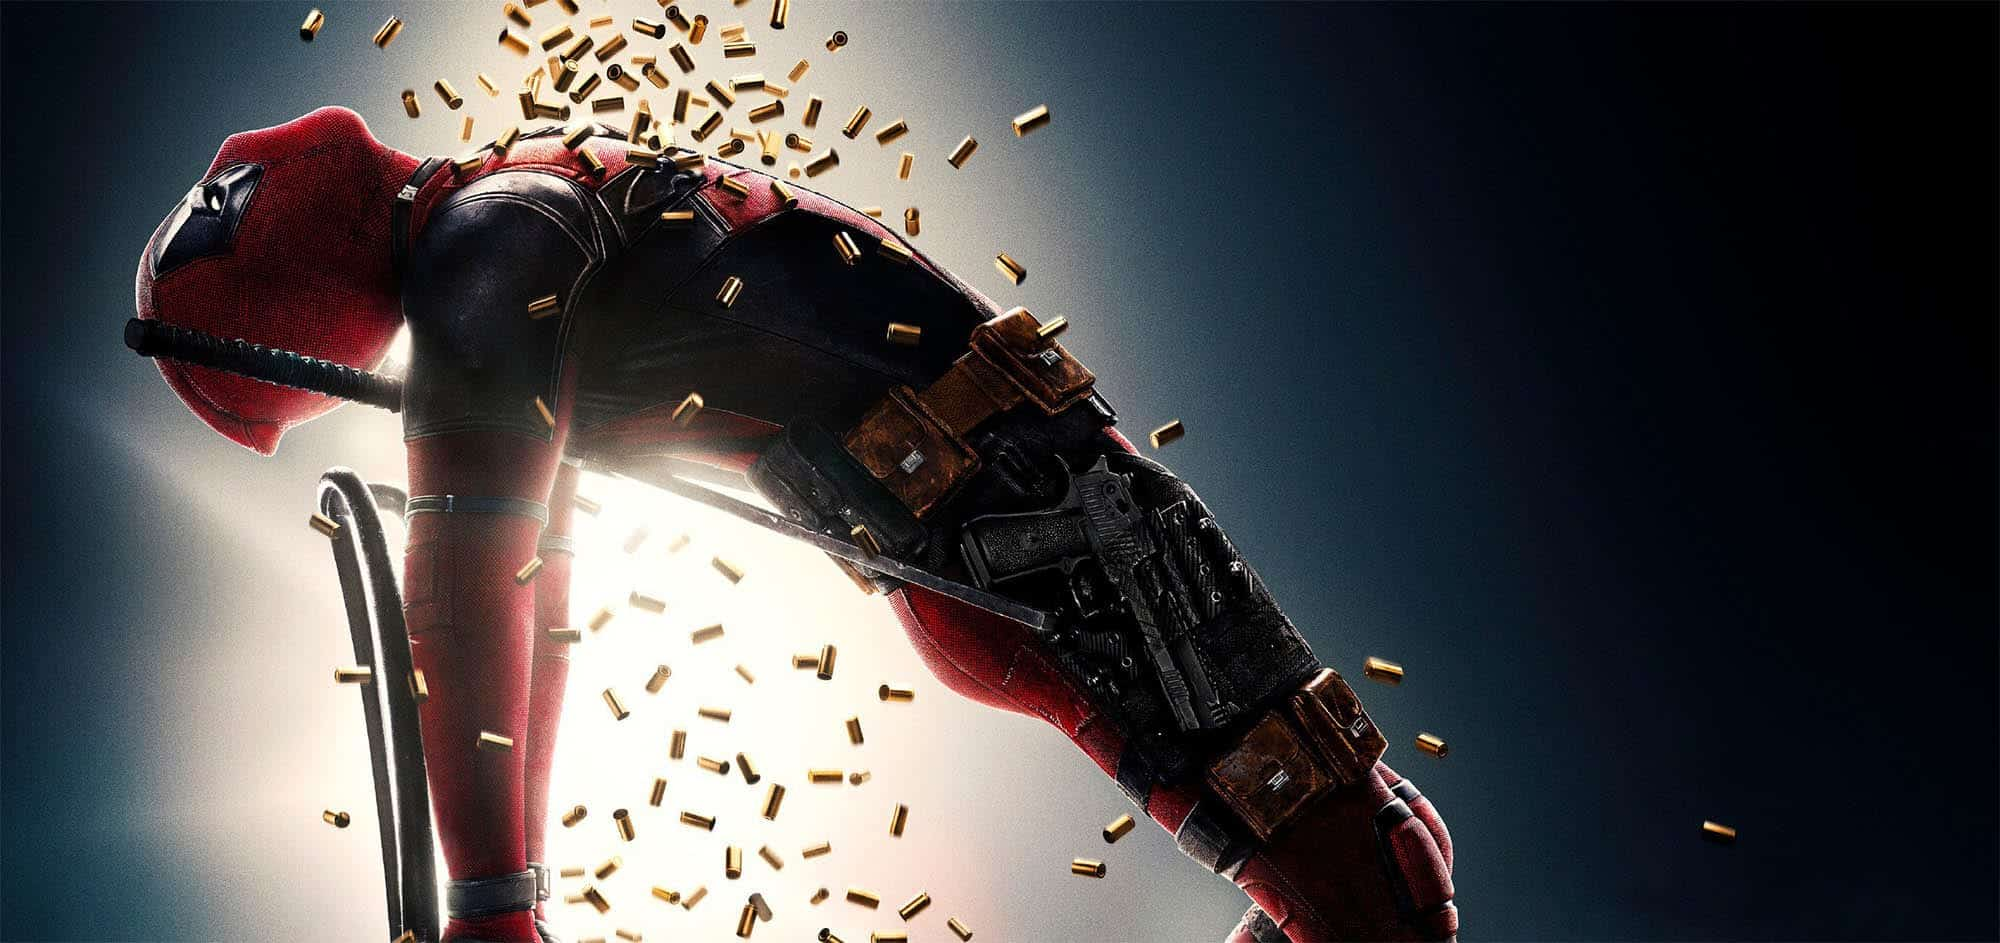 """'Deadpool 2' arrived in UK cinemas this week and in a new interview with the leather clad anti-hero, we learn about the eventful Deadpool journey from inception through to the """"expansive two movie universe"""" it's become."""